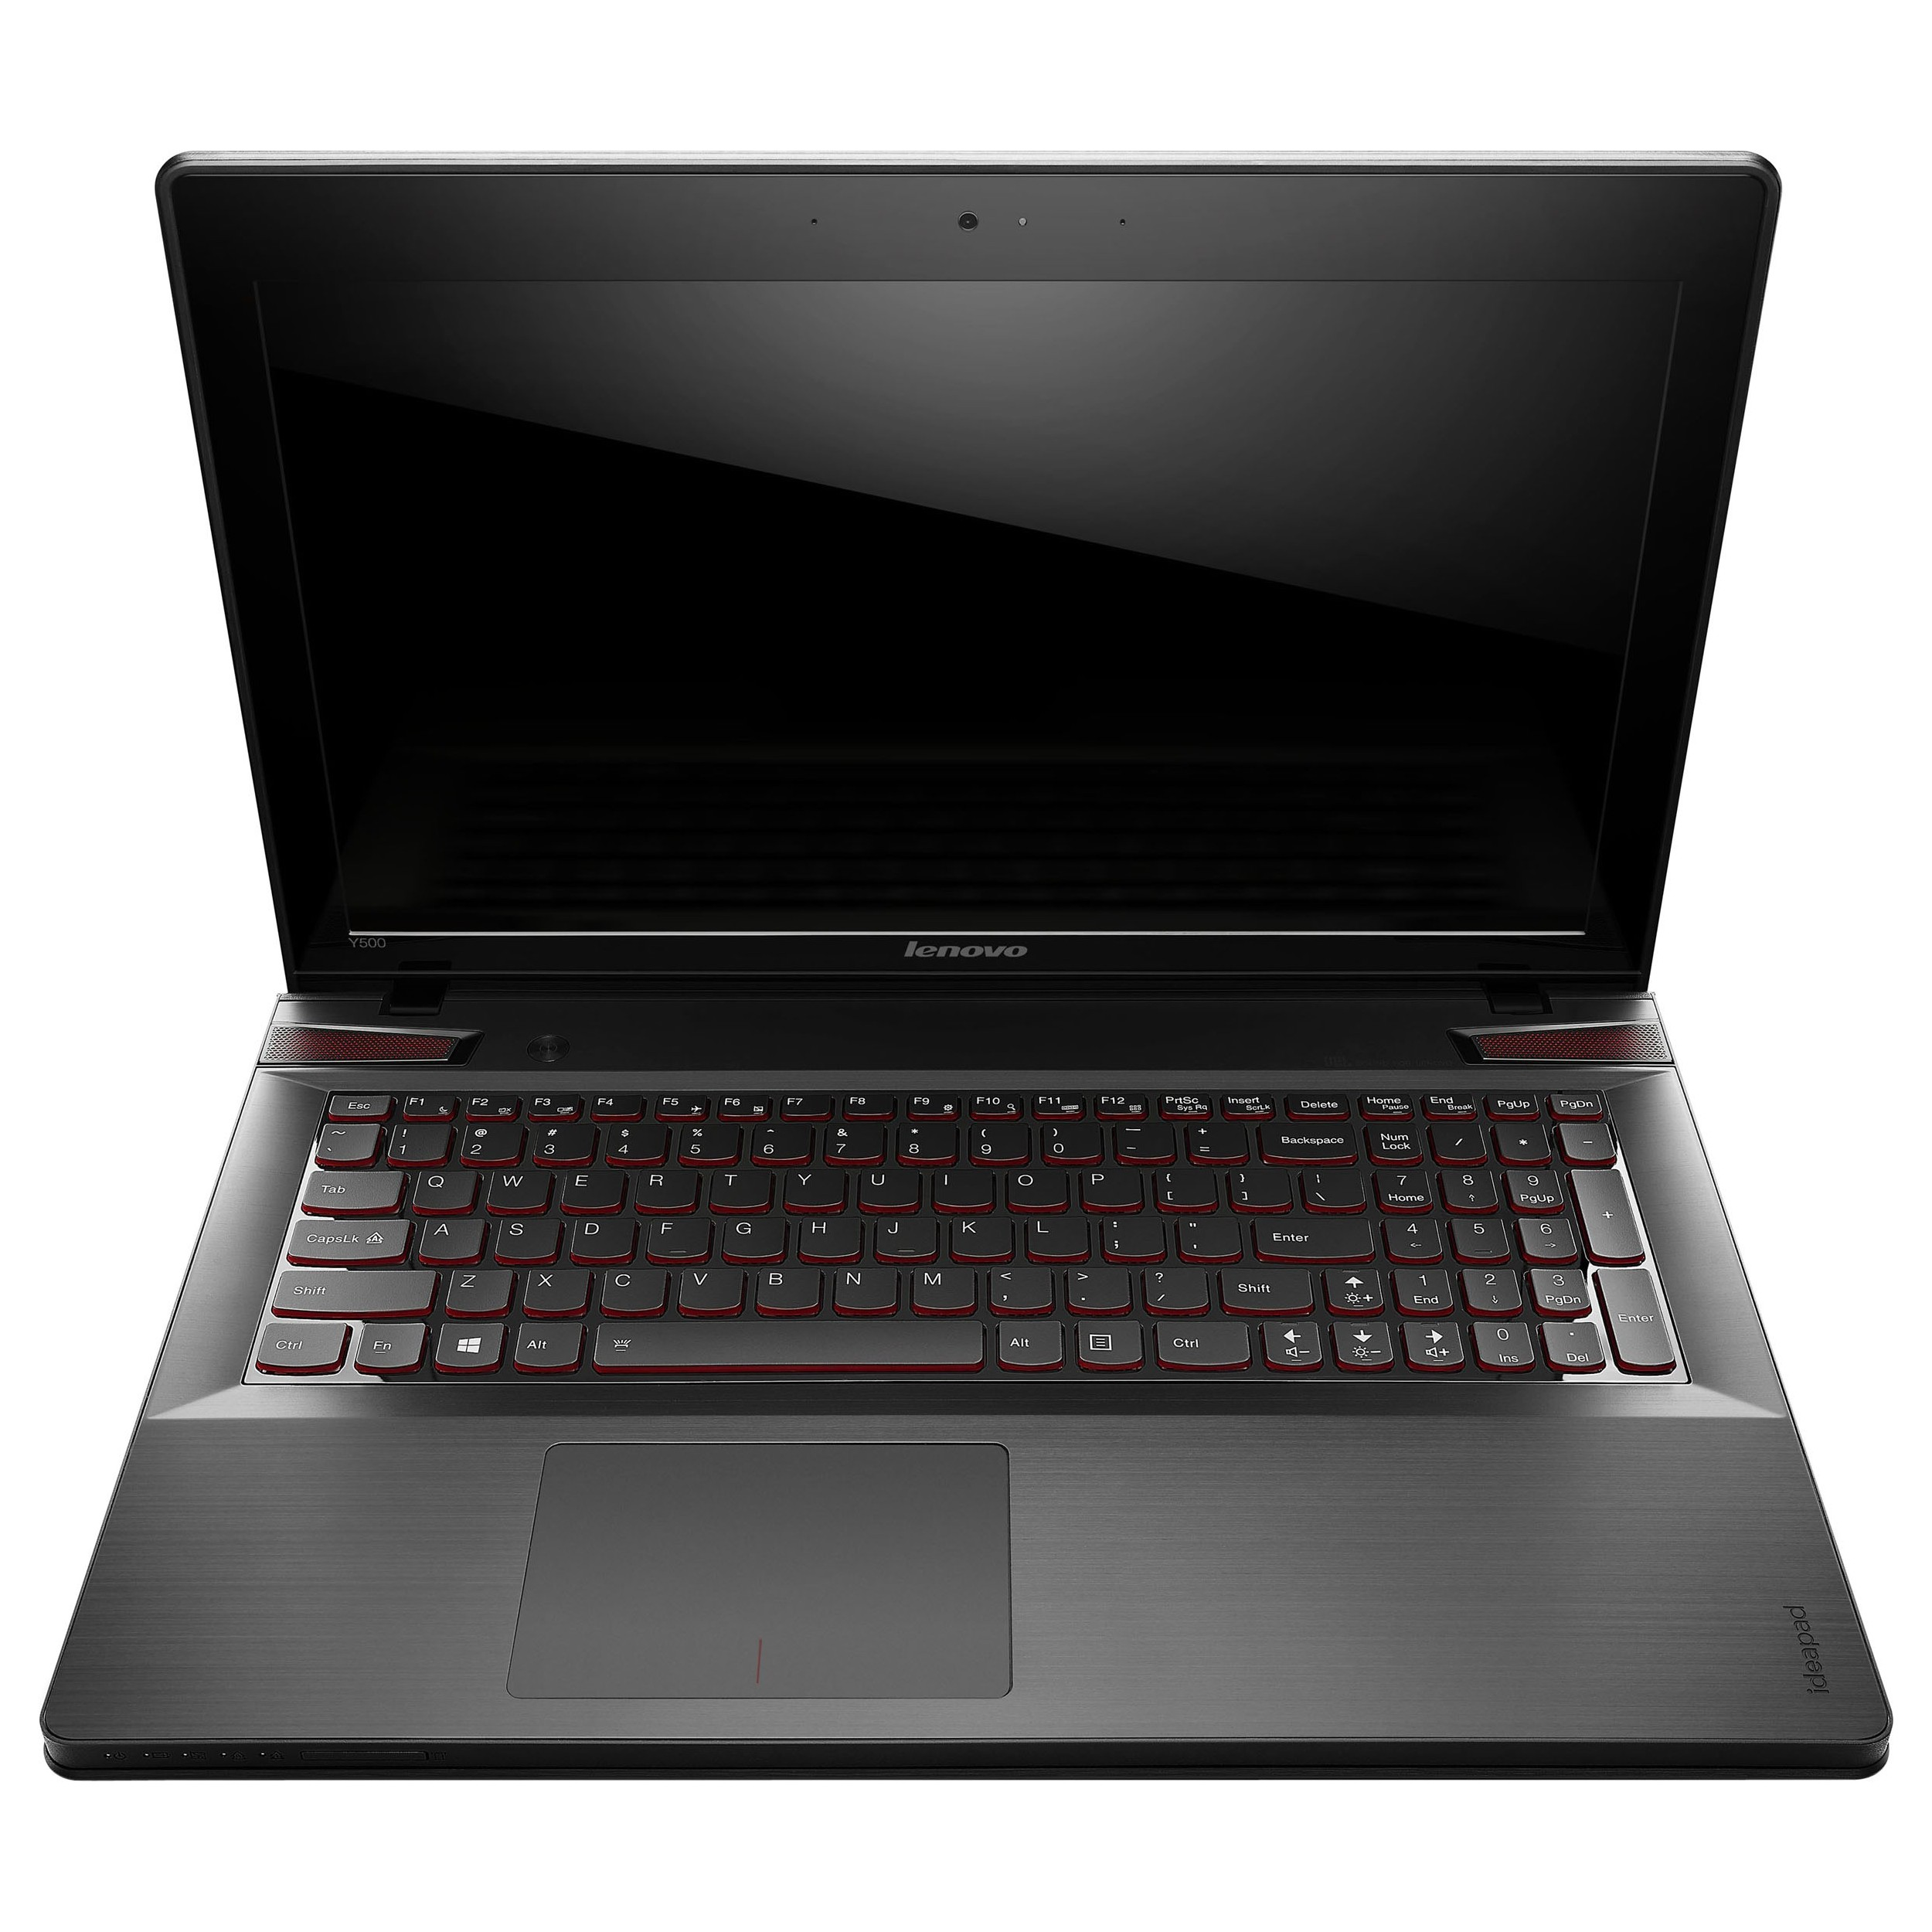 "Lenovo Metal Dusk Black 15.6"" IdeaPad Y500 Laptop PC with Intel Core i5-3230M Processor and Windows 8 Operating System"